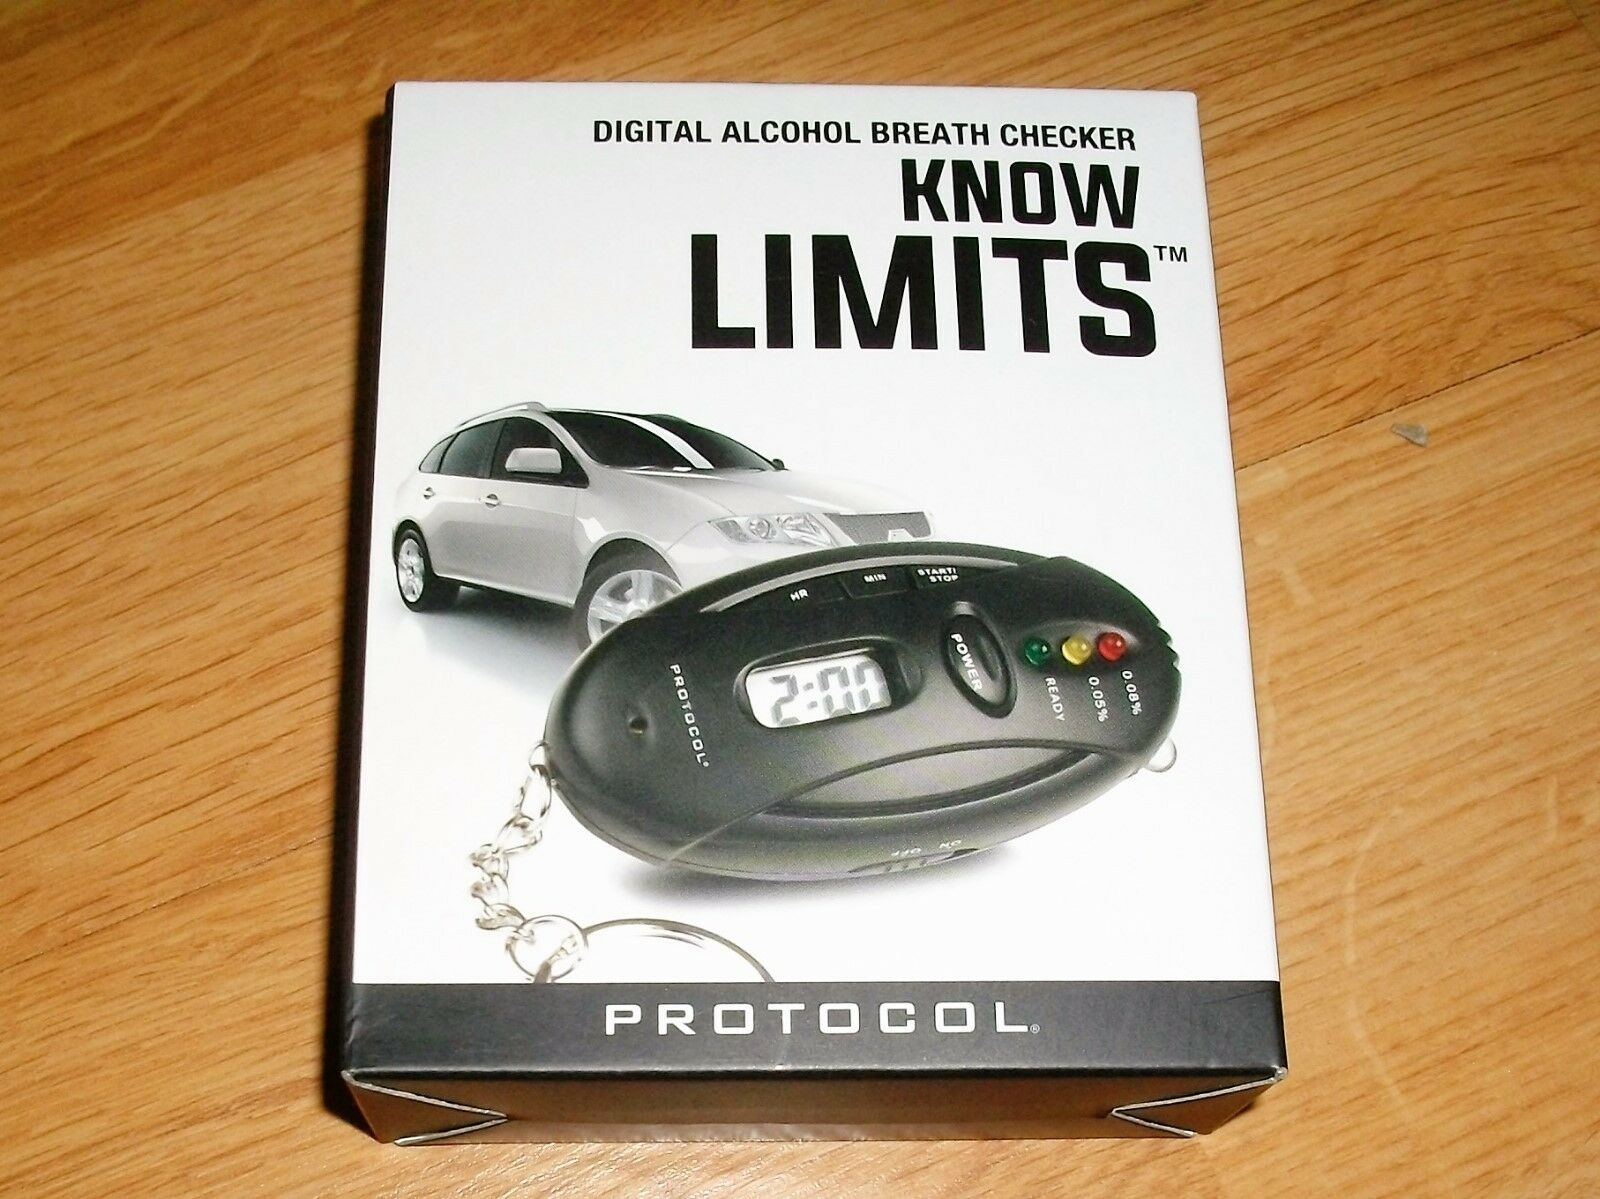 DIDITAL ALCOHOL BREATH CHECKER( KNOW LIMITS)